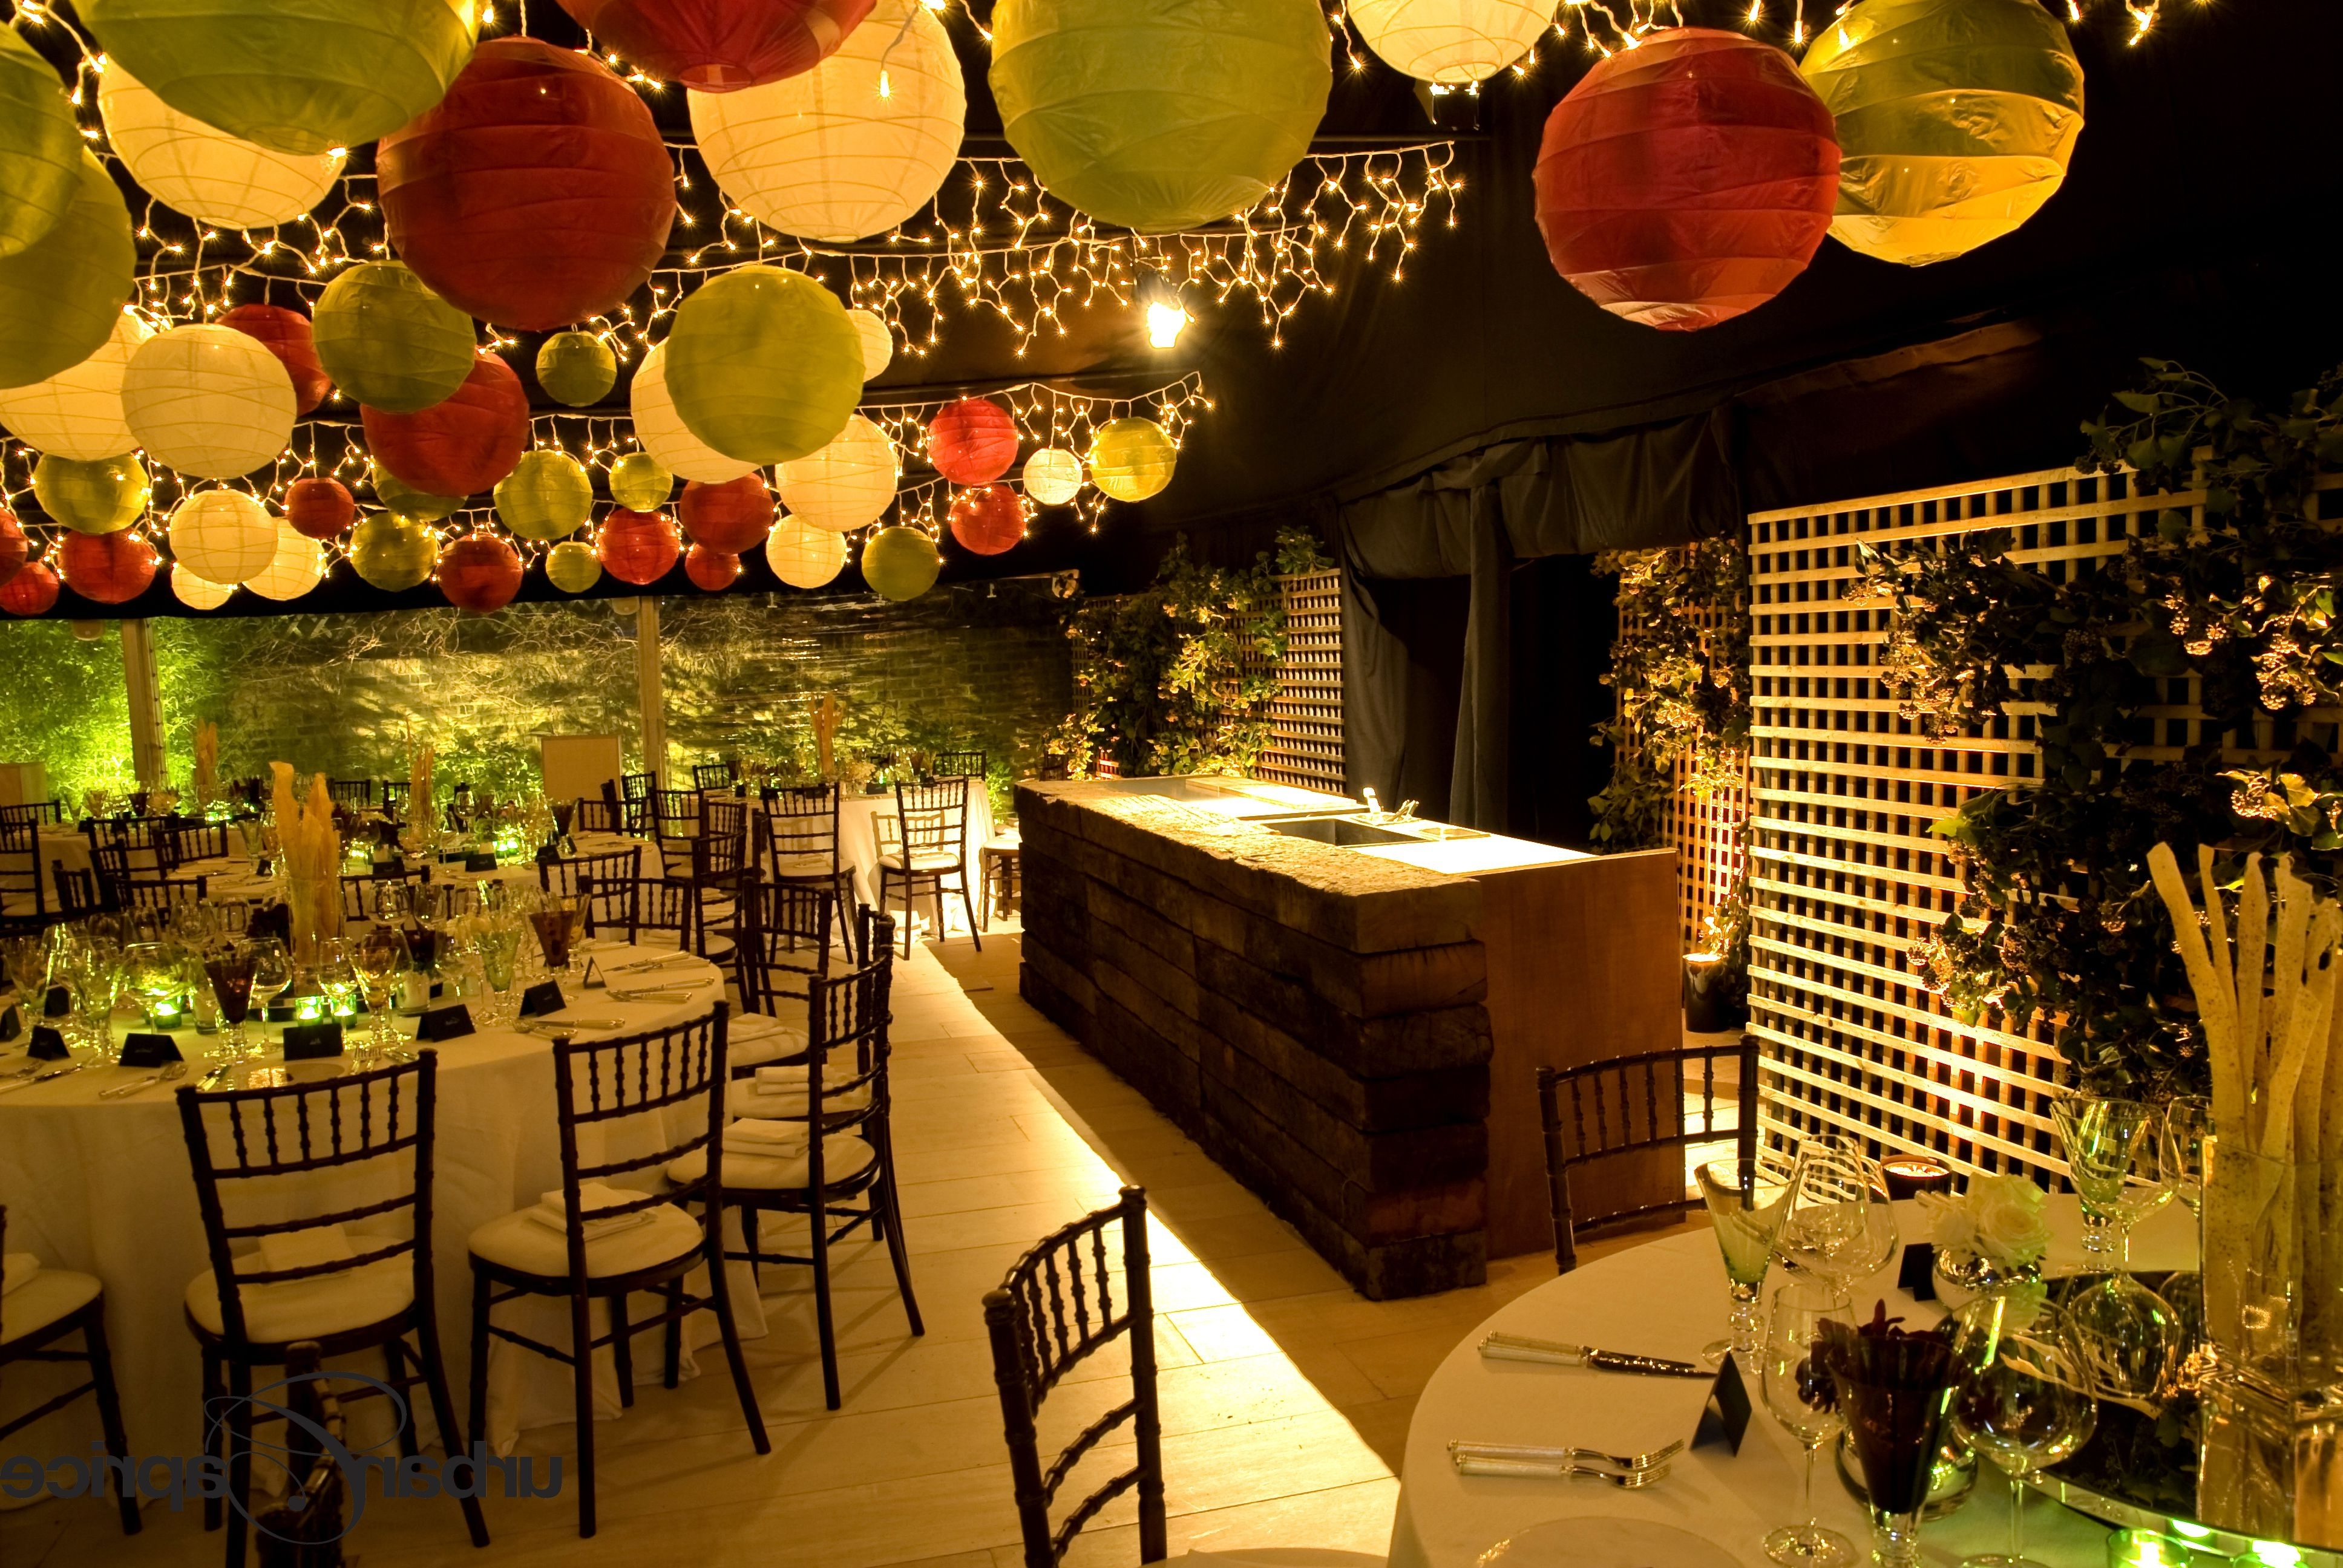 Outdoor Parties With Outdoor Lanterns For Parties (Gallery 2 of 20)